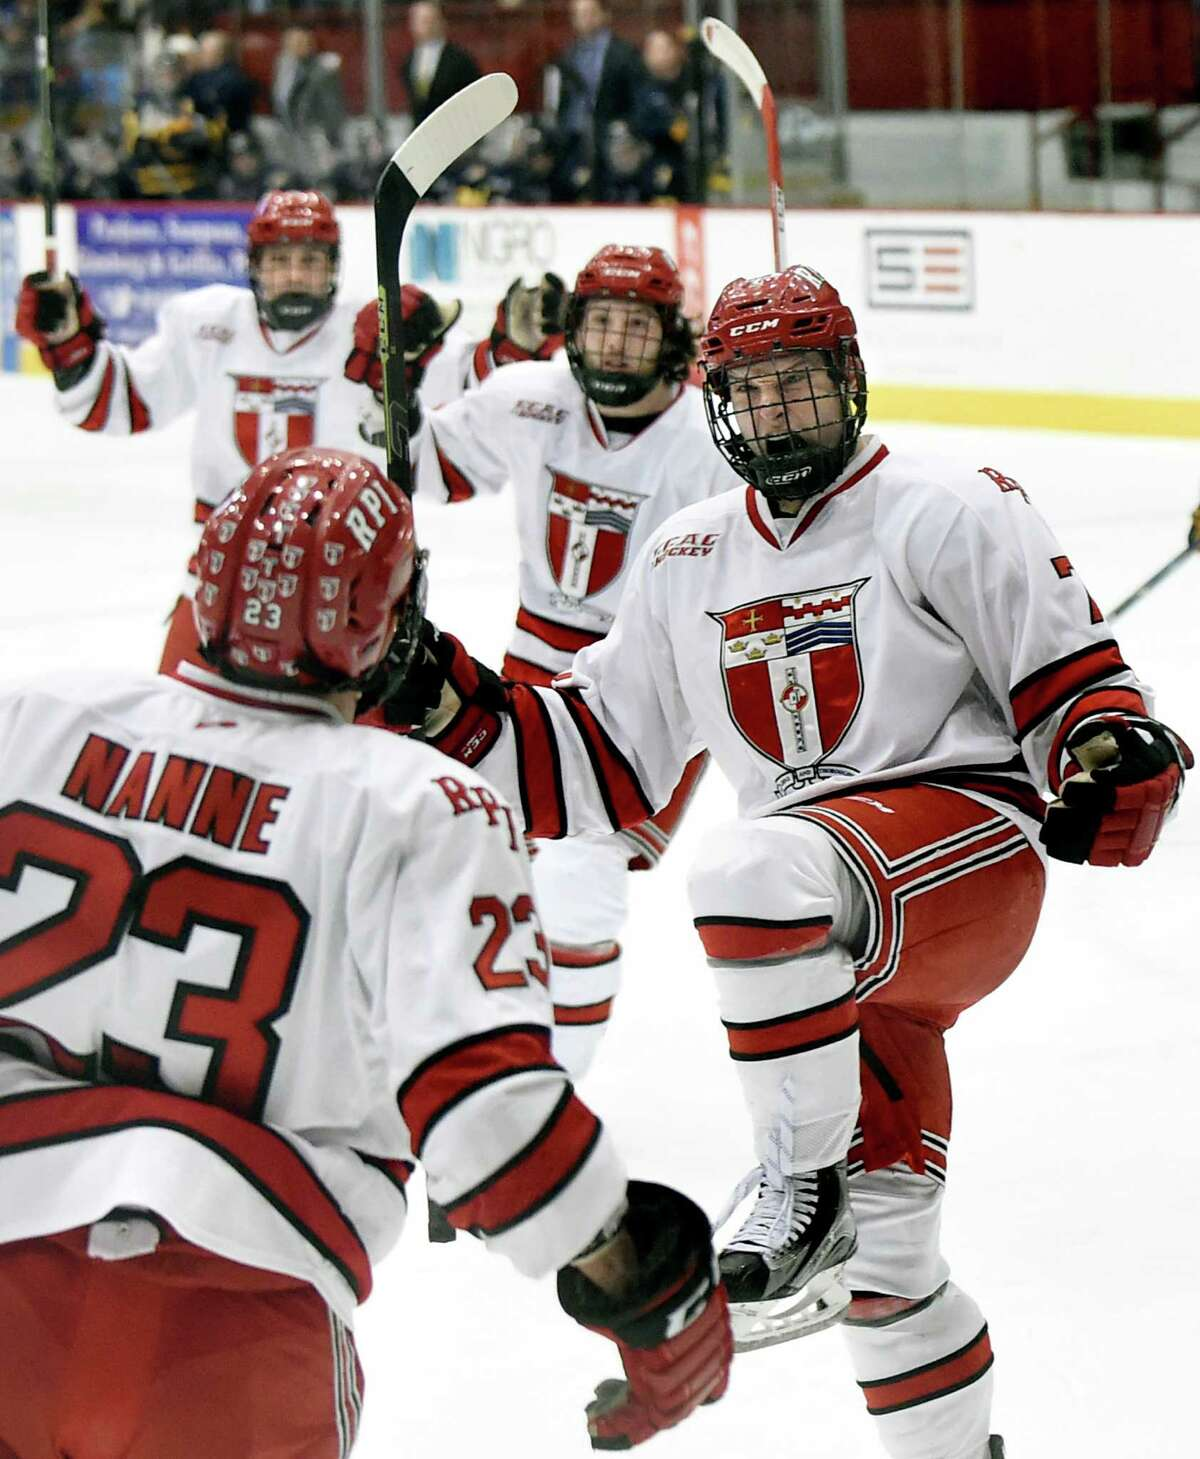 RPI's Zach Schroeder, right, celebrates his second period goal with an assist from teammate Lou Nanne, left, during their hockey game against Quinnipiac on Friday, Feb. 19, 2016, at Houston Field House in Troy, N.Y. (Cindy Schultz / Times Union)